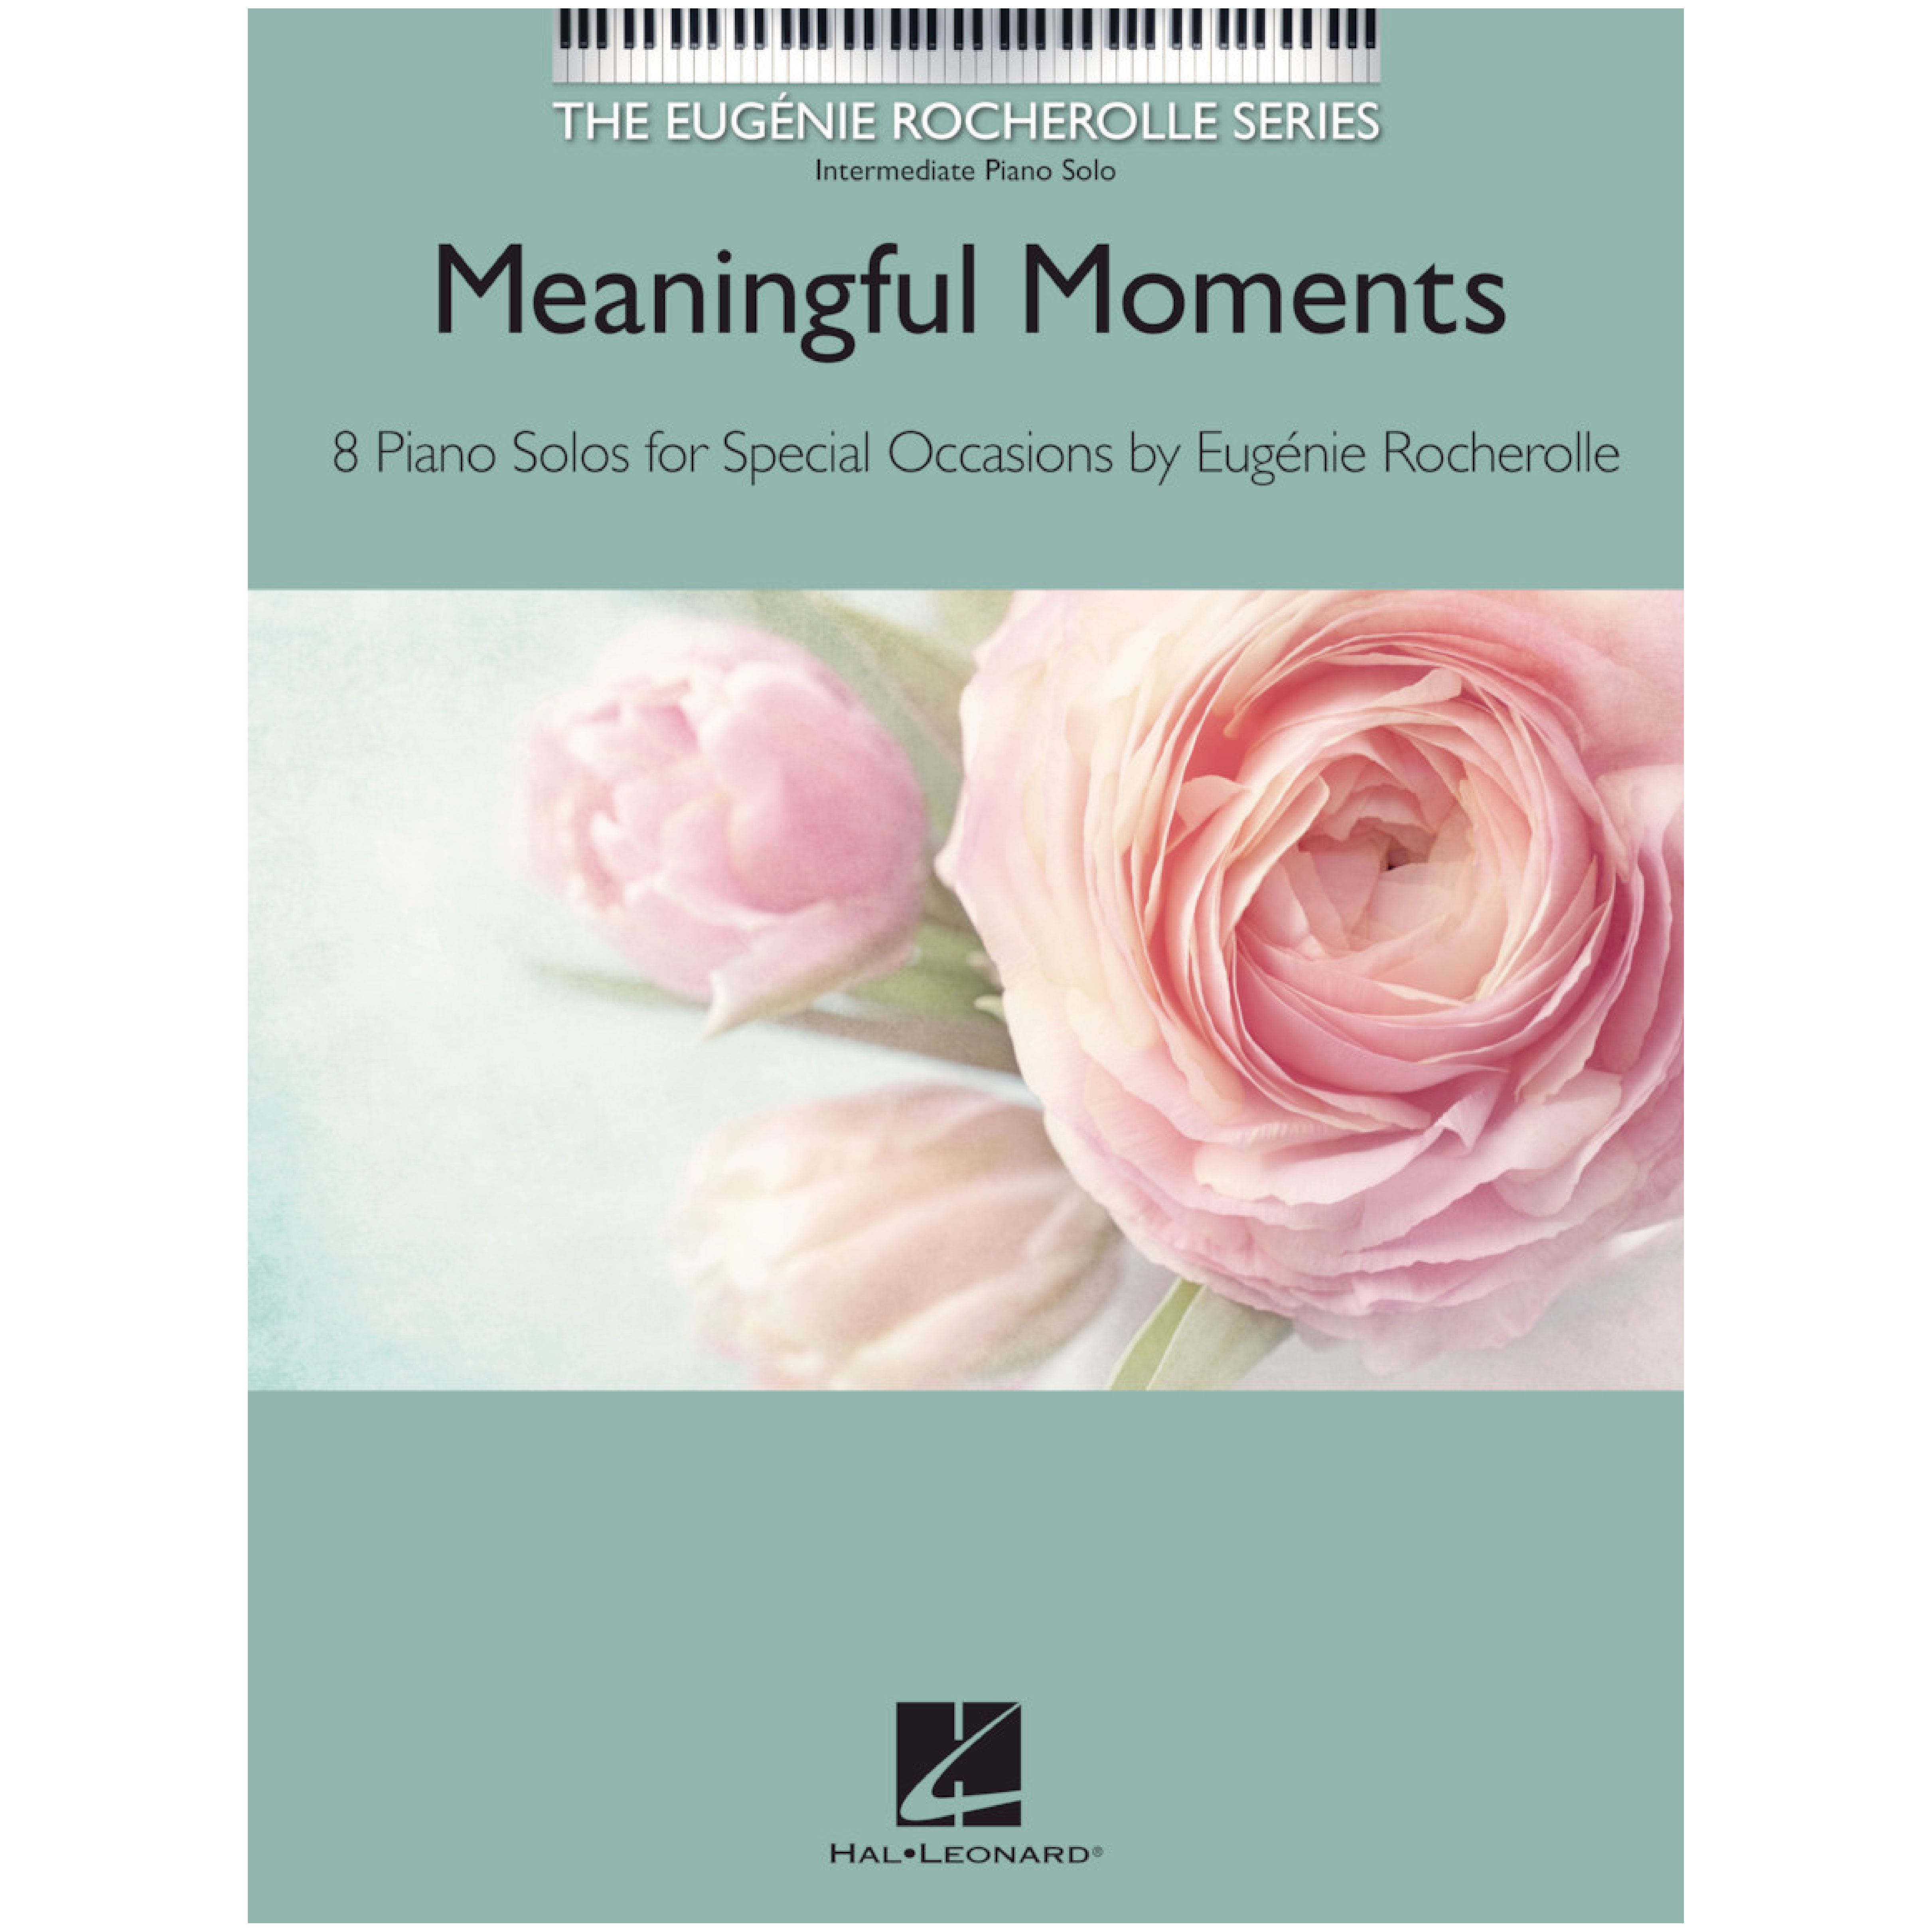 MEANINGFUL MOMENTS